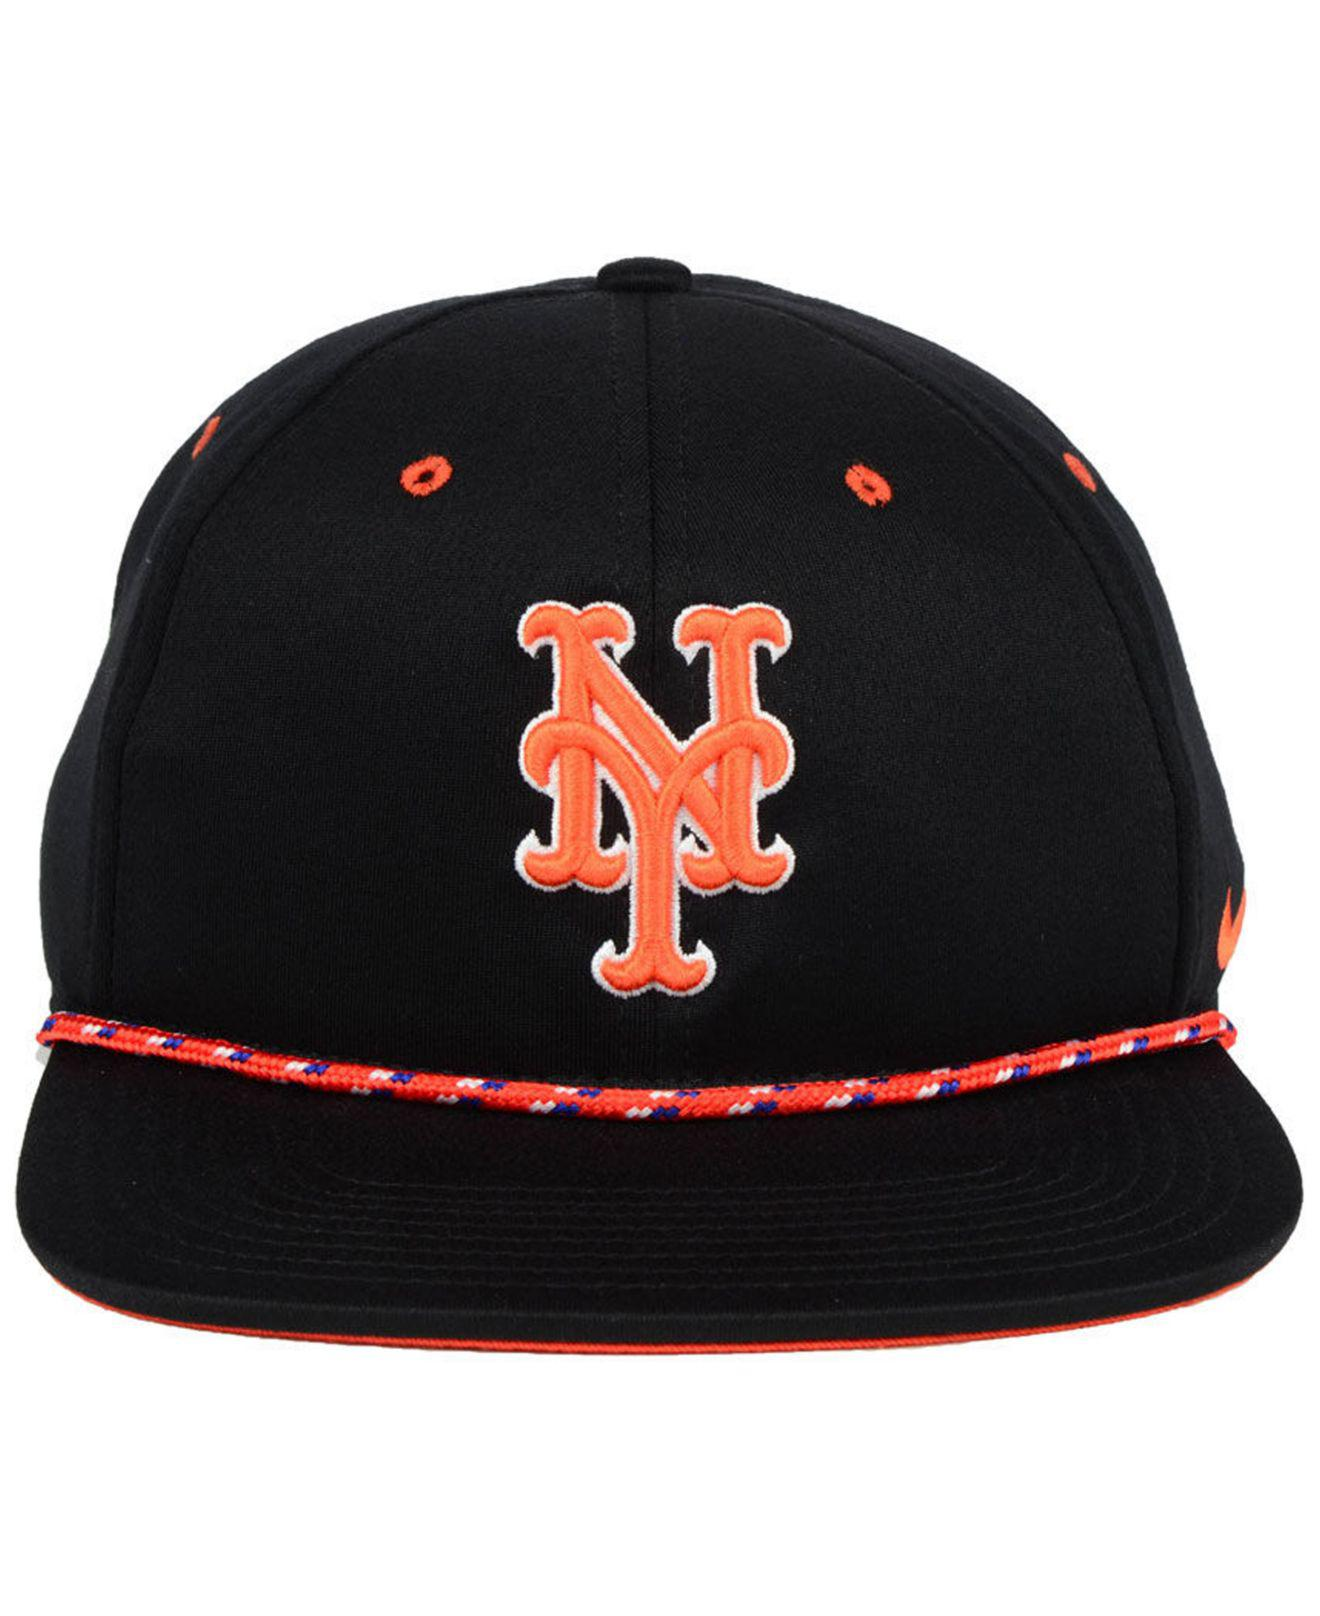 official photos 788b9 3ca0d Lyst - Nike New York Mets String Bill Snapback Cap in Black for Men